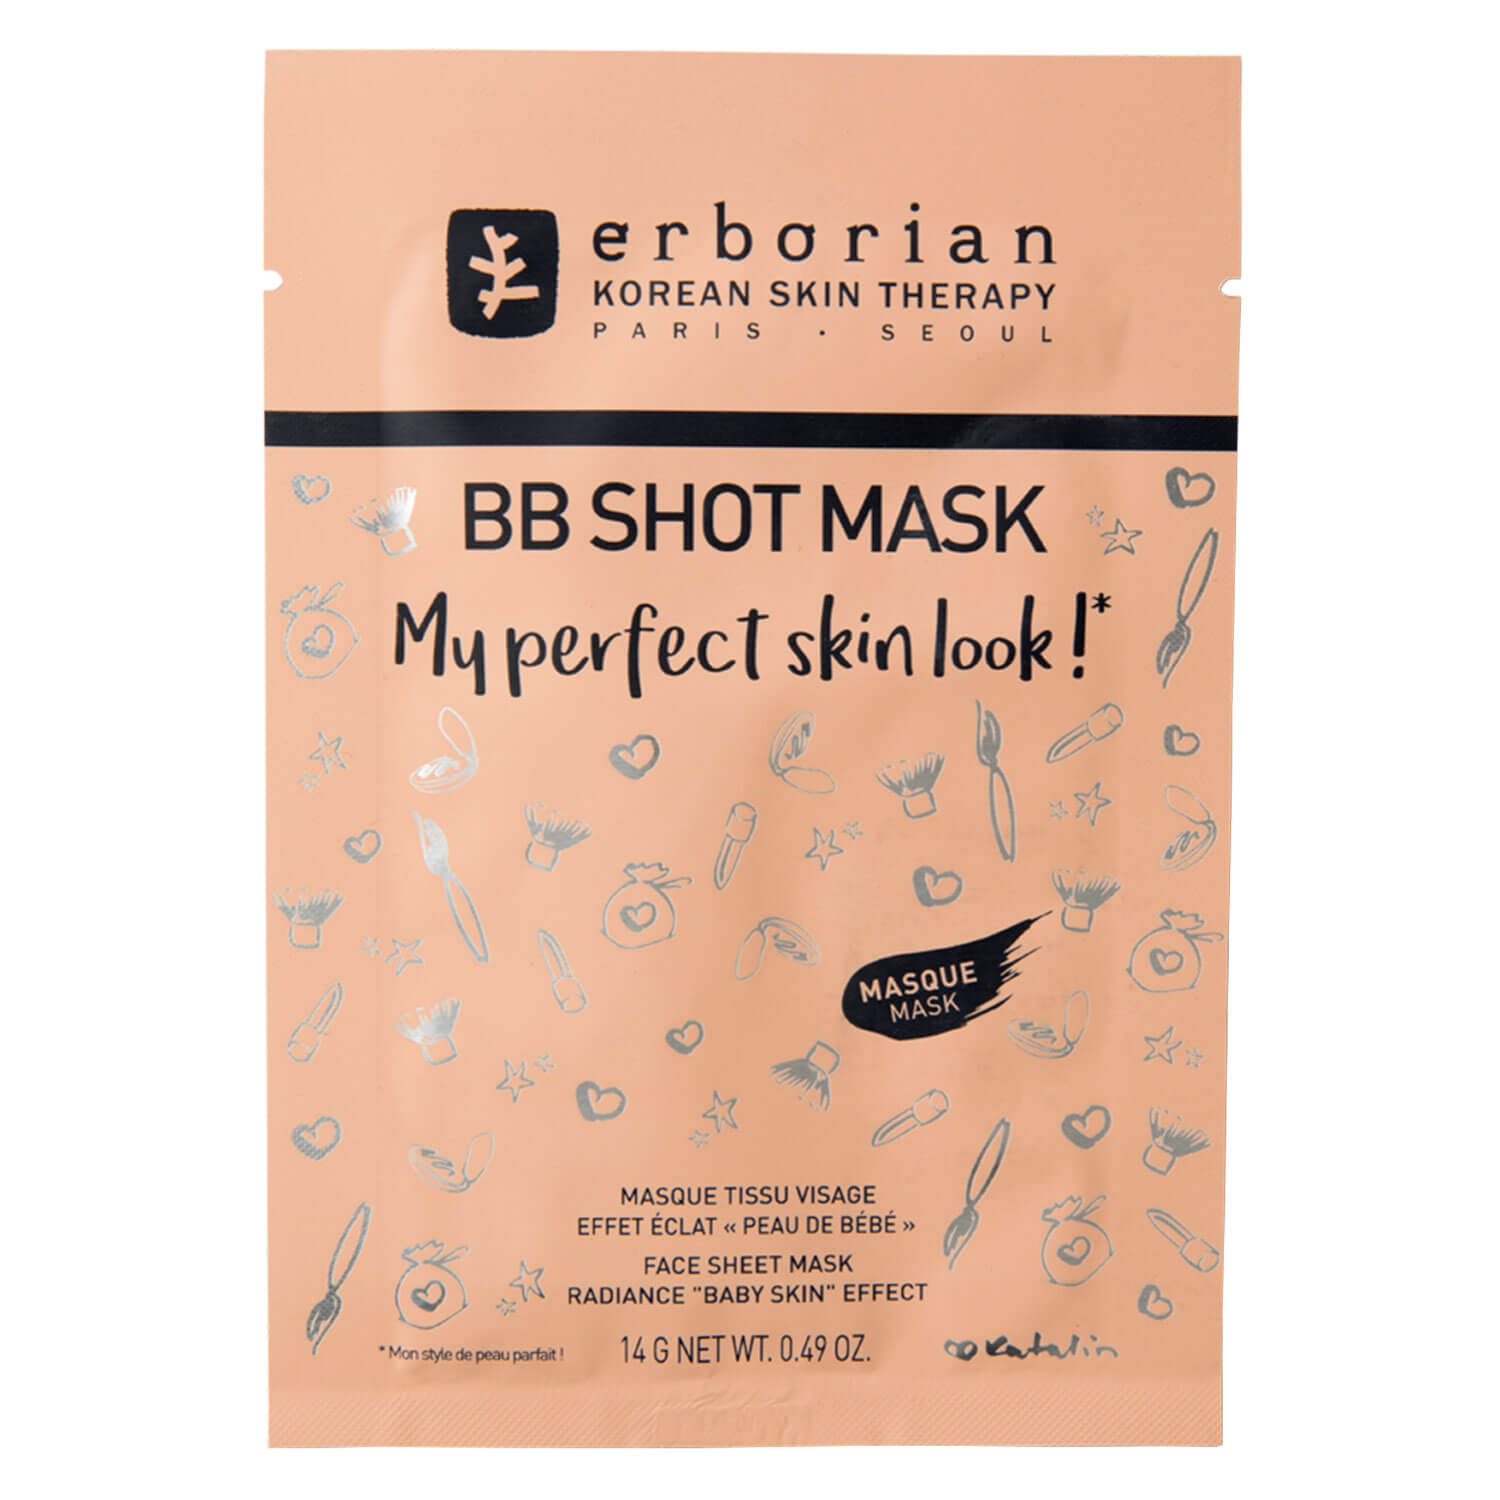 erborian BB - Shot Mask